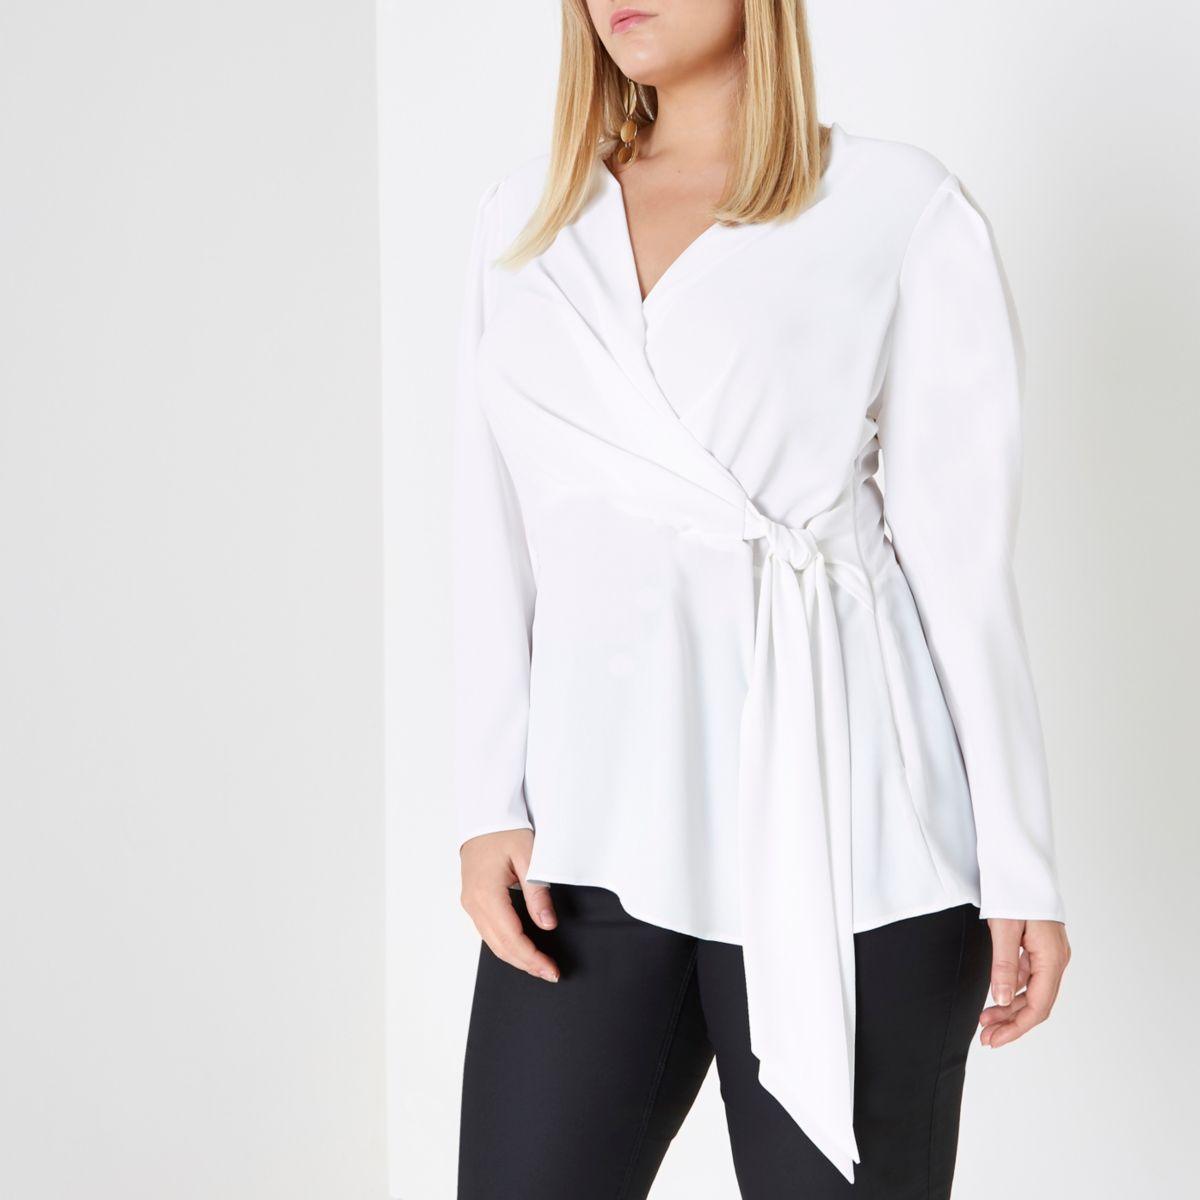 Halston Heritage Floral Embroidered Long-Sleeve Blouse Details Halston Heritage blouse with floral embroidery shoulder detail. V neckline. Long sleeves with button cuffs. Straight hem. Relaxed fit. .